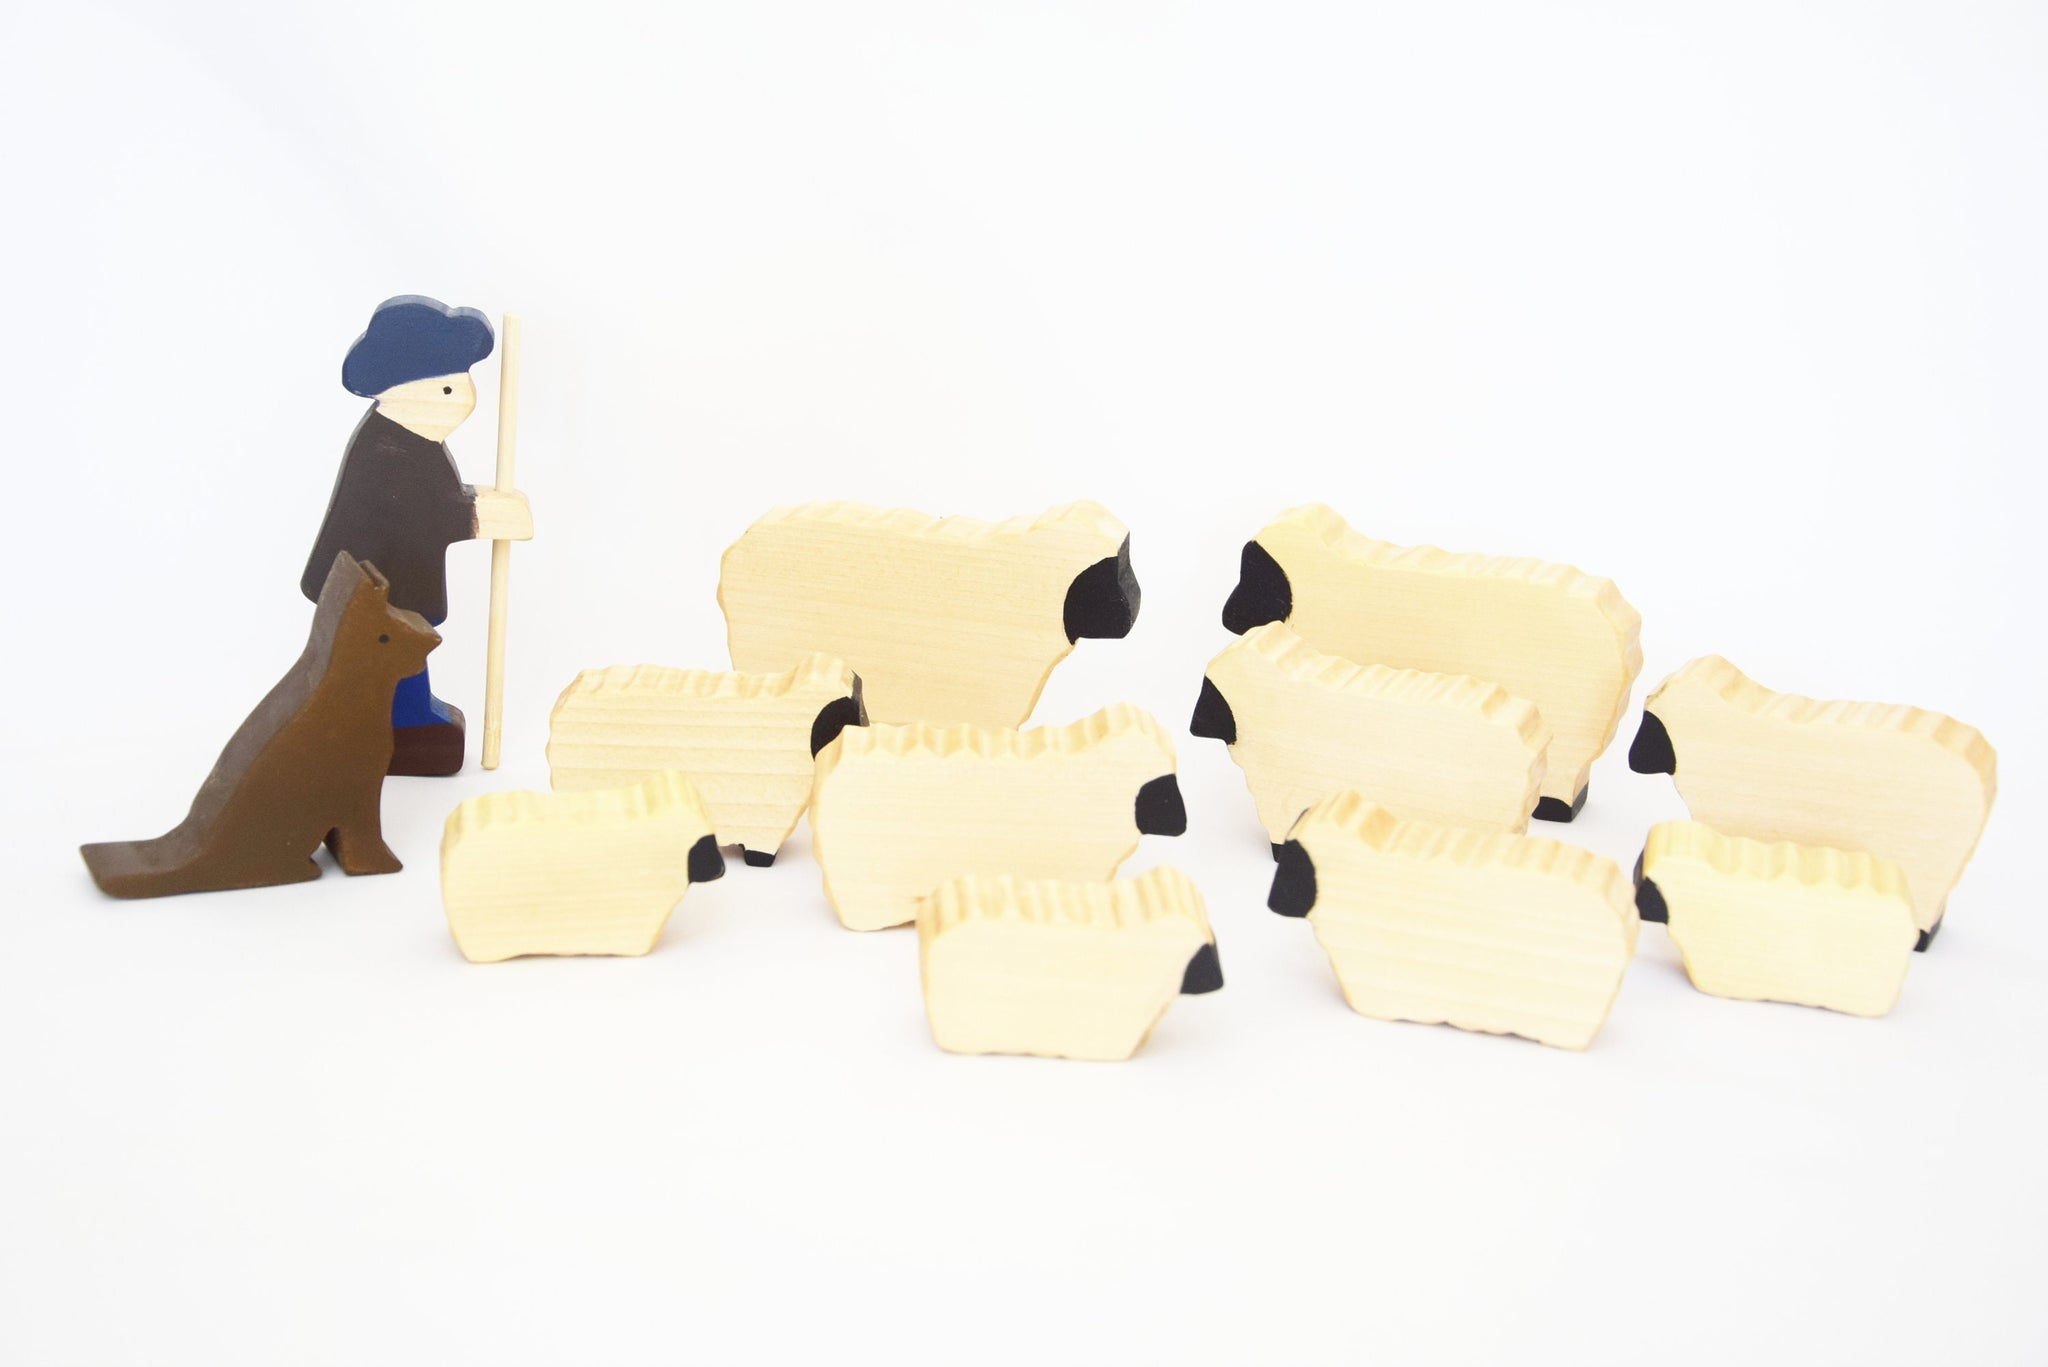 Shepherd with sheep, wooden play set, open ended play, sheep wooden animals, pretend play, waldorf inspired, wooden animals toy set